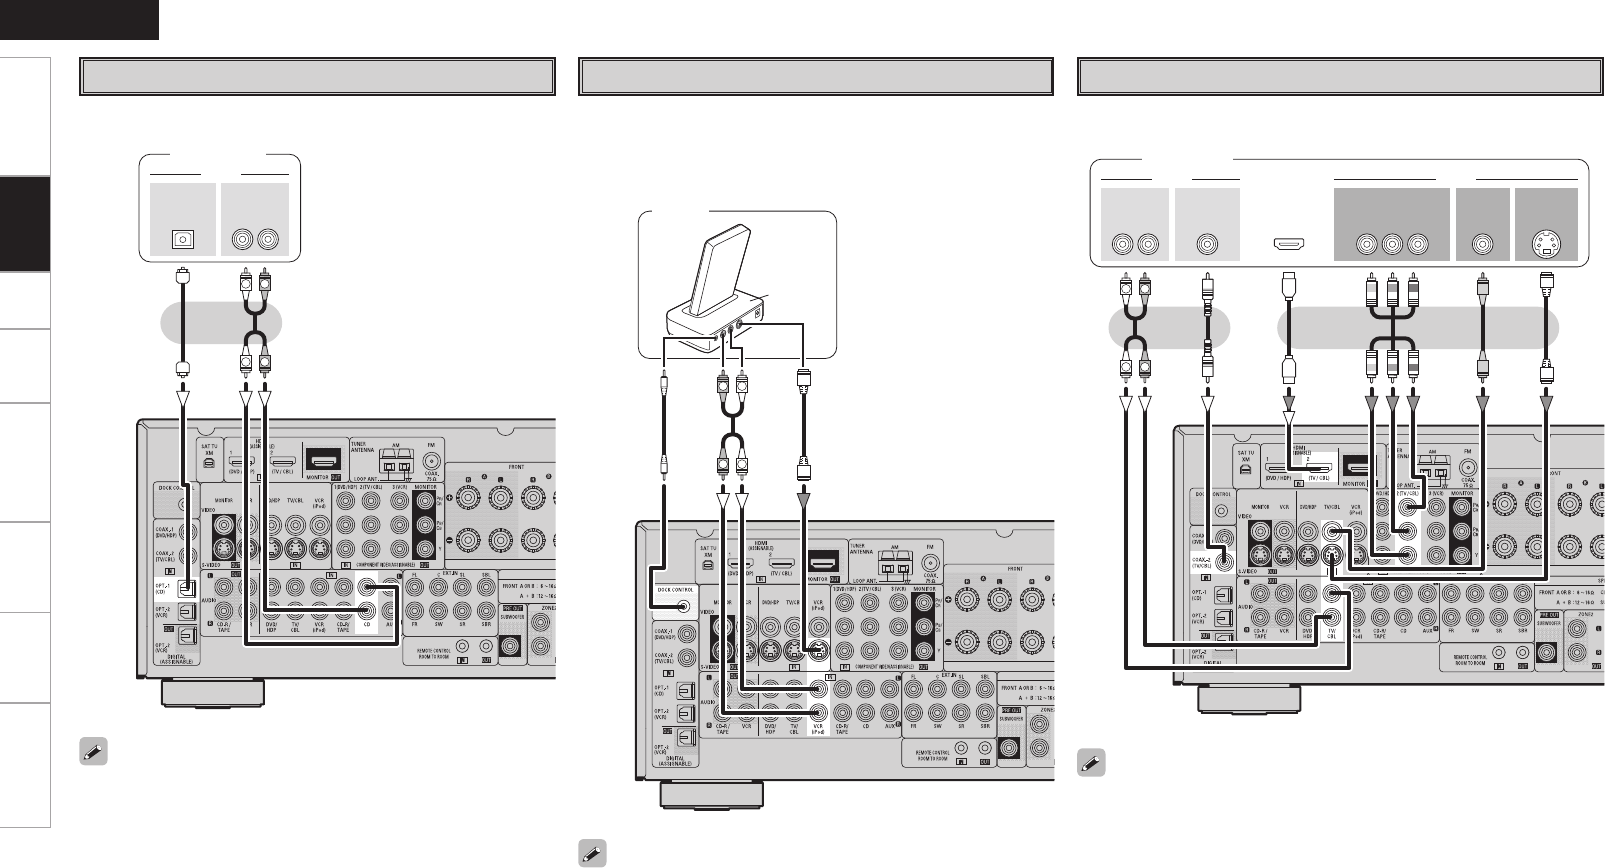 Page 16 of Denon Stereo Receiver AVR-1908 User Guide